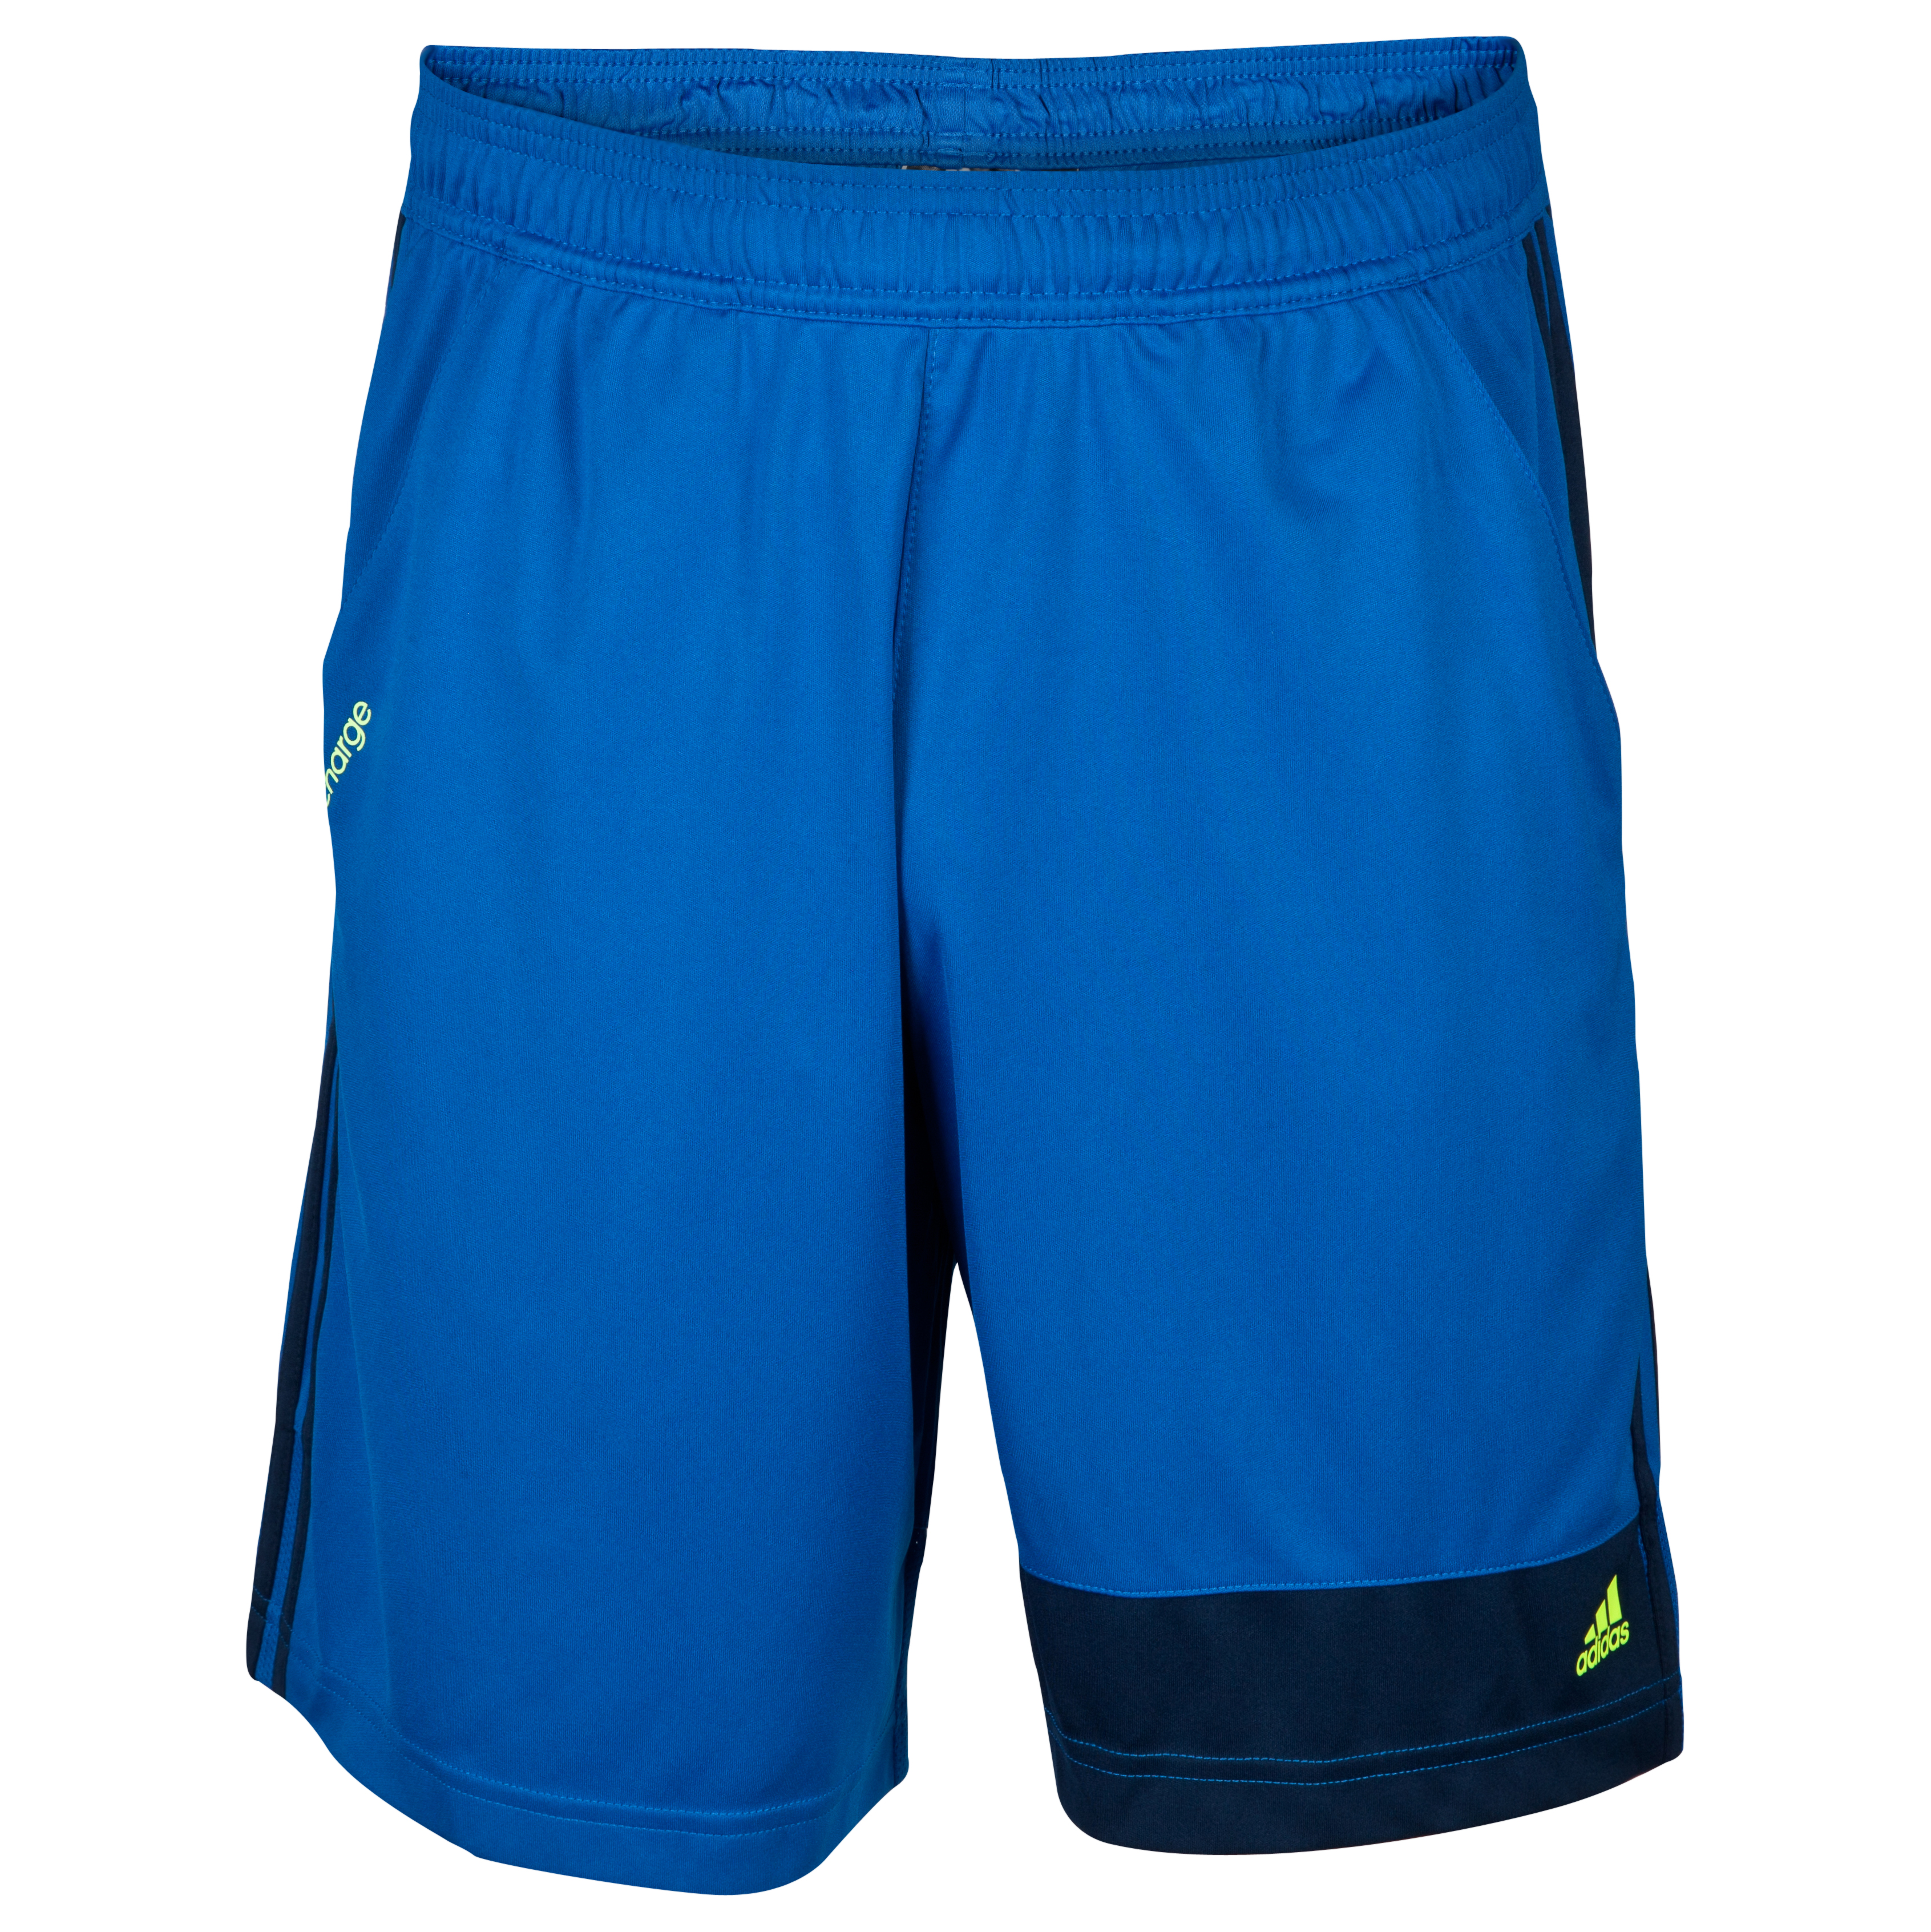 Adidas Nitrocharge Climacool Training Short Blue